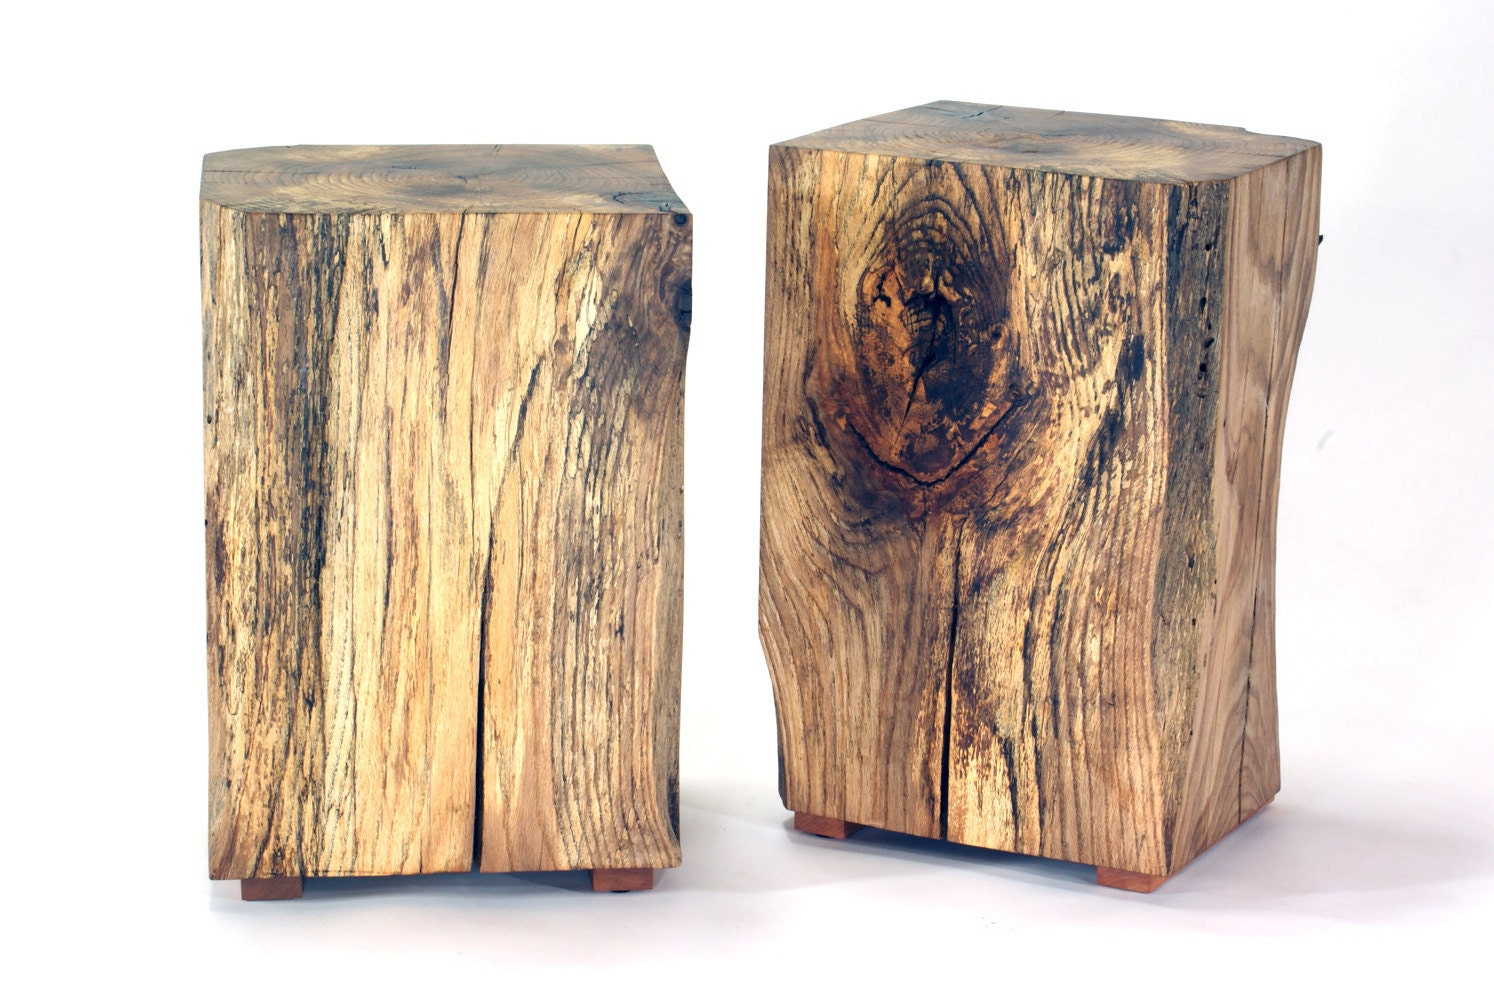 Reclaimed Wood Side Table WB Designs - Reclaimed Wood Side Table WB Designs